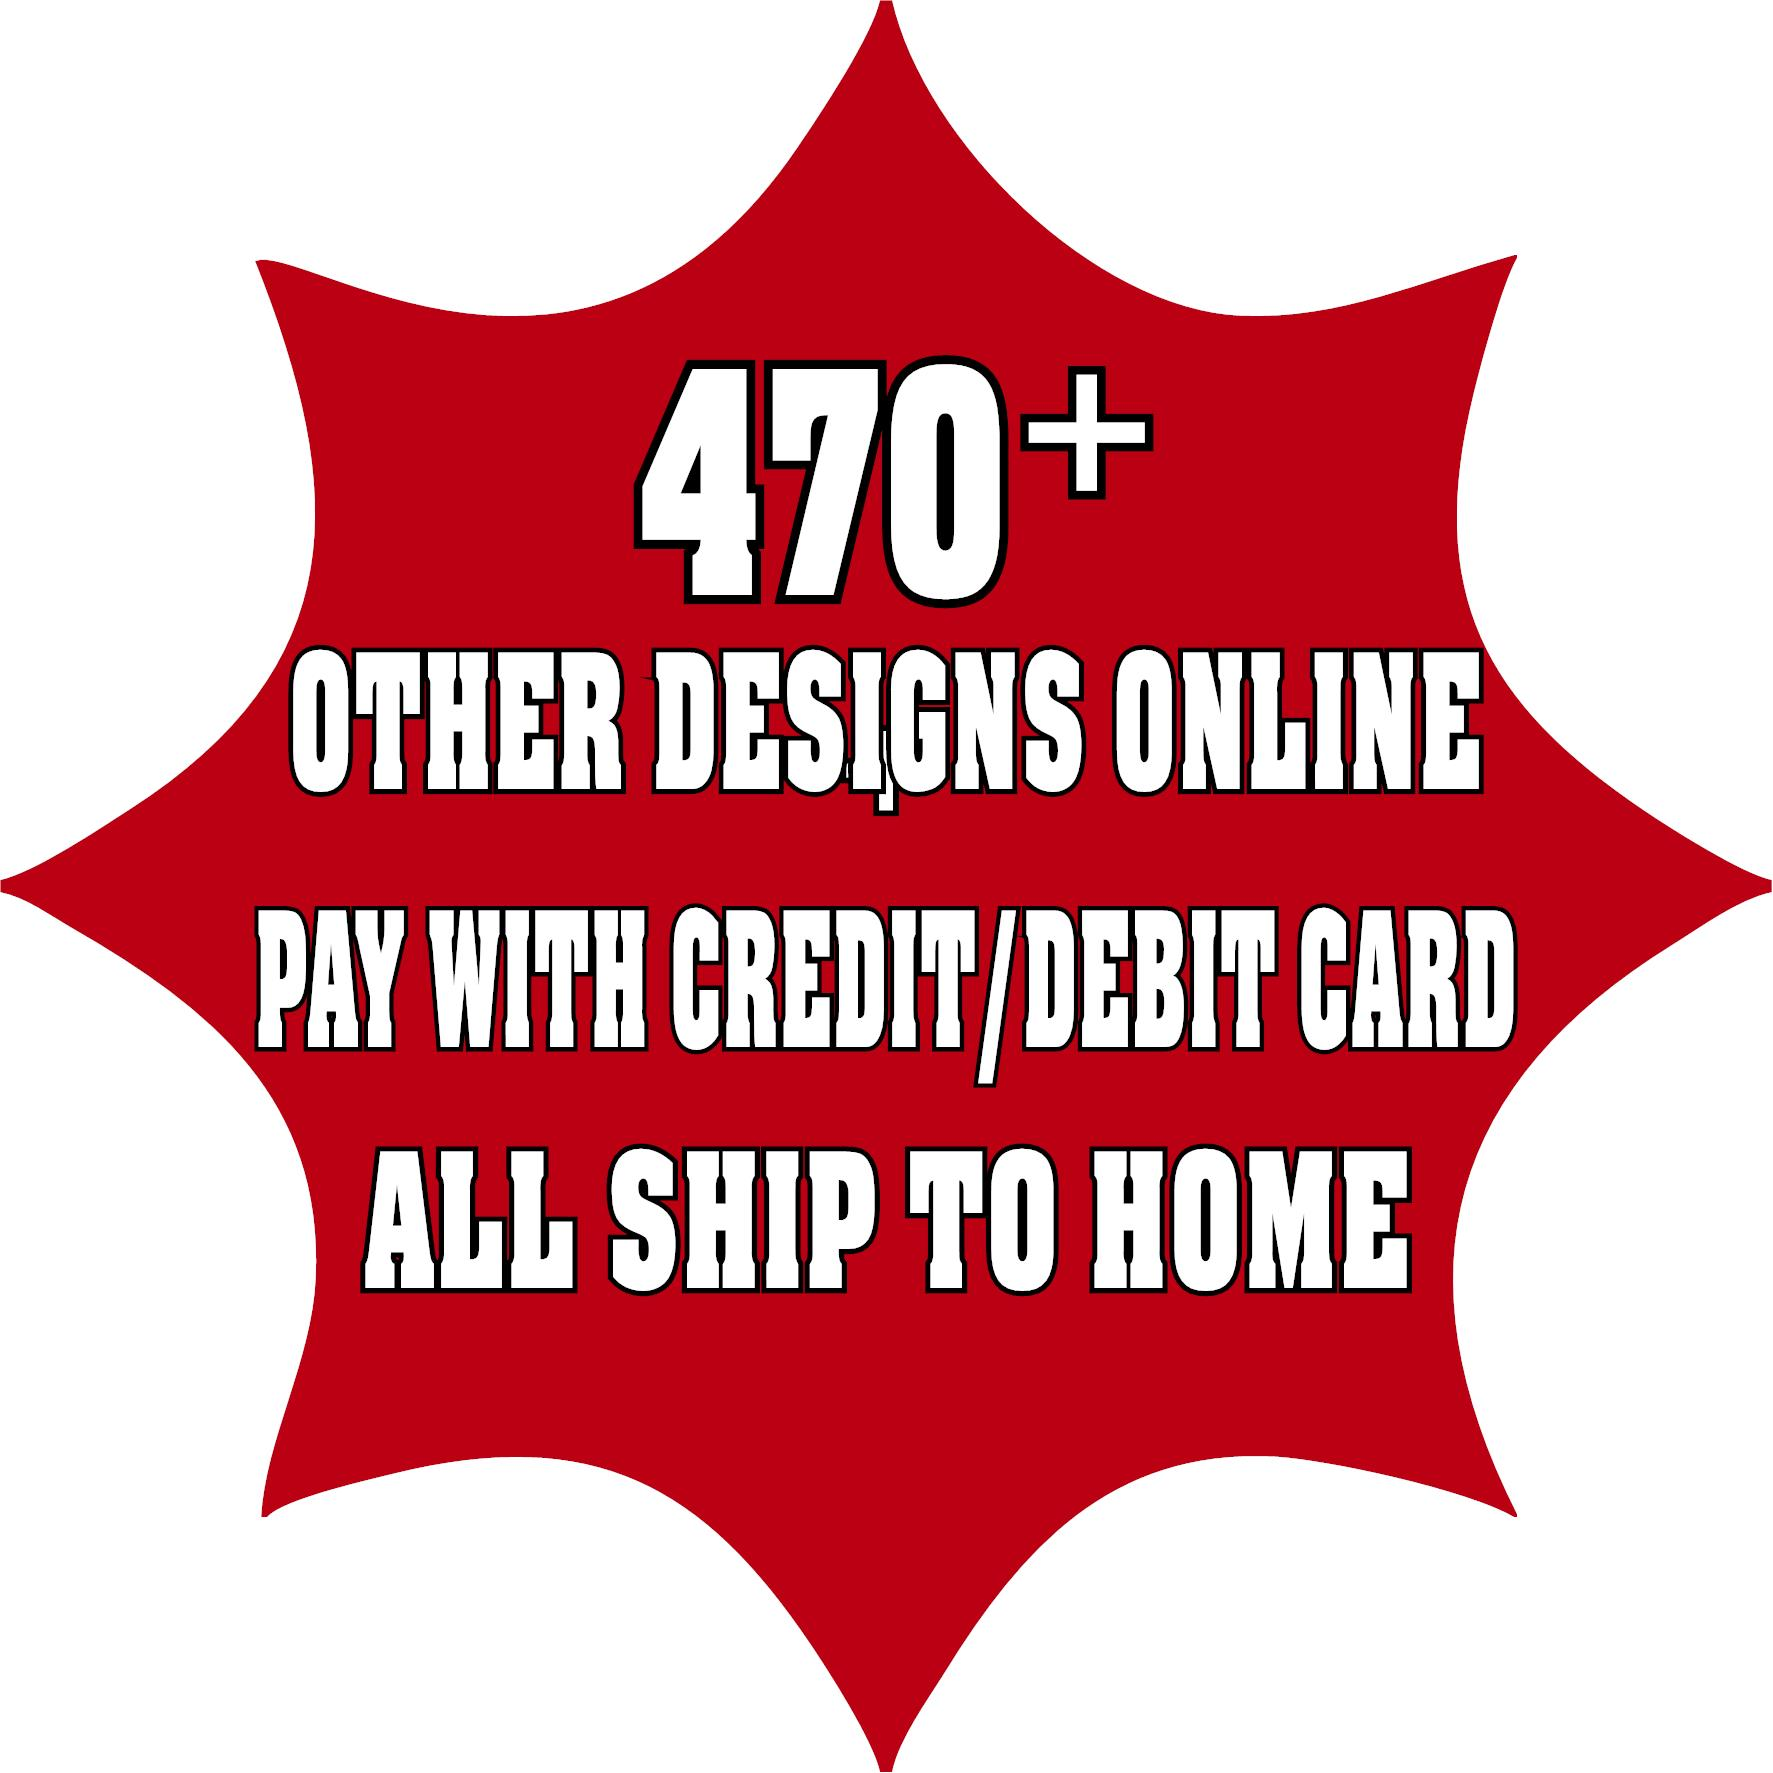 470+ Other Designs Online